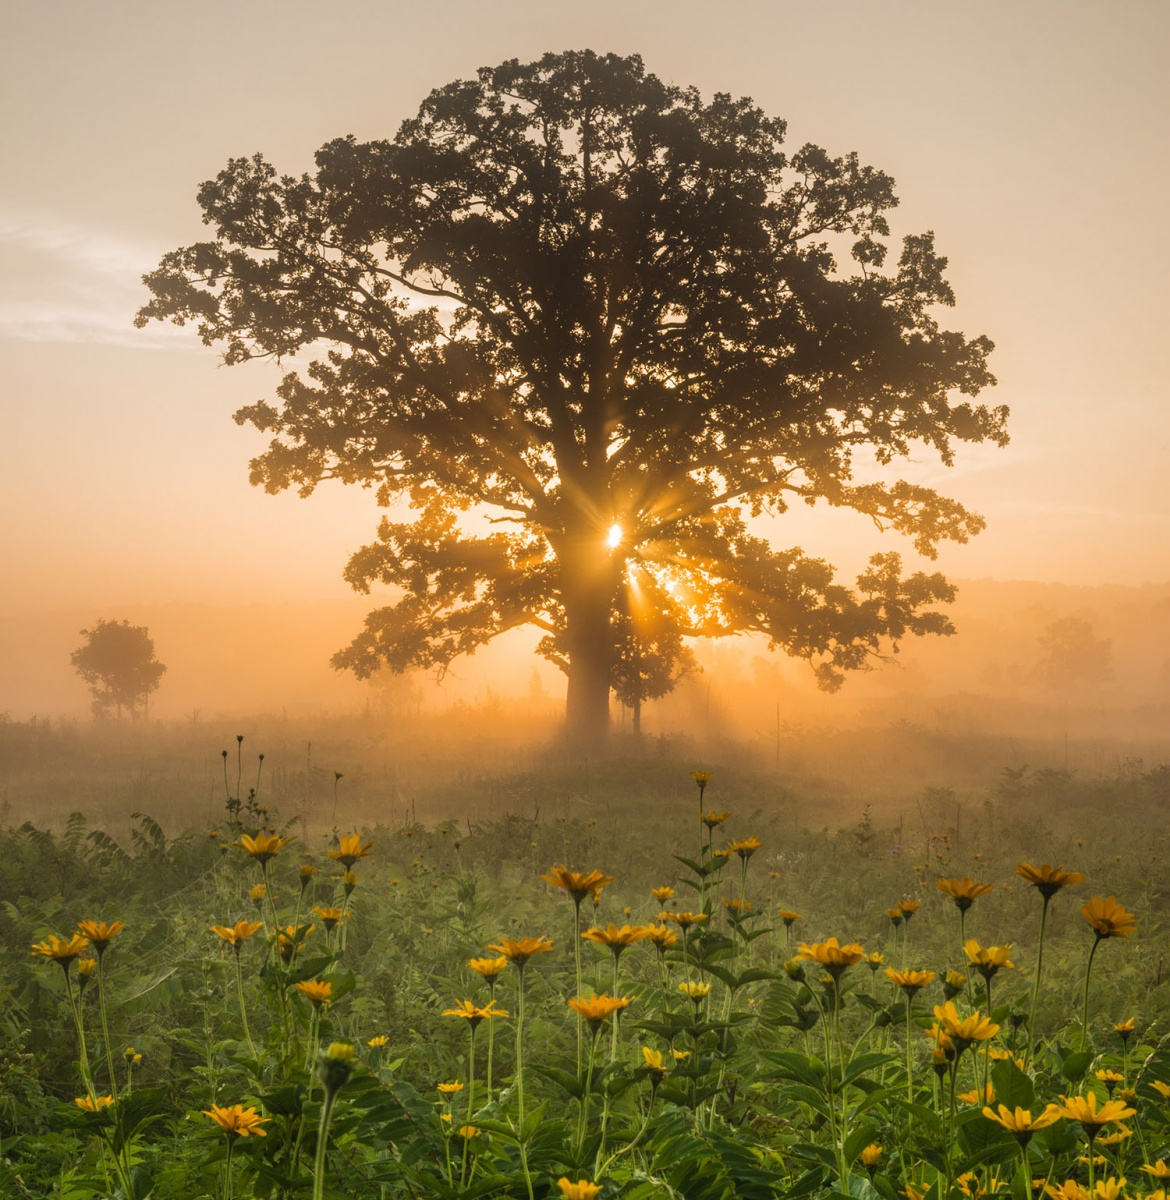 light streams through a tree in a field of yellow flowers